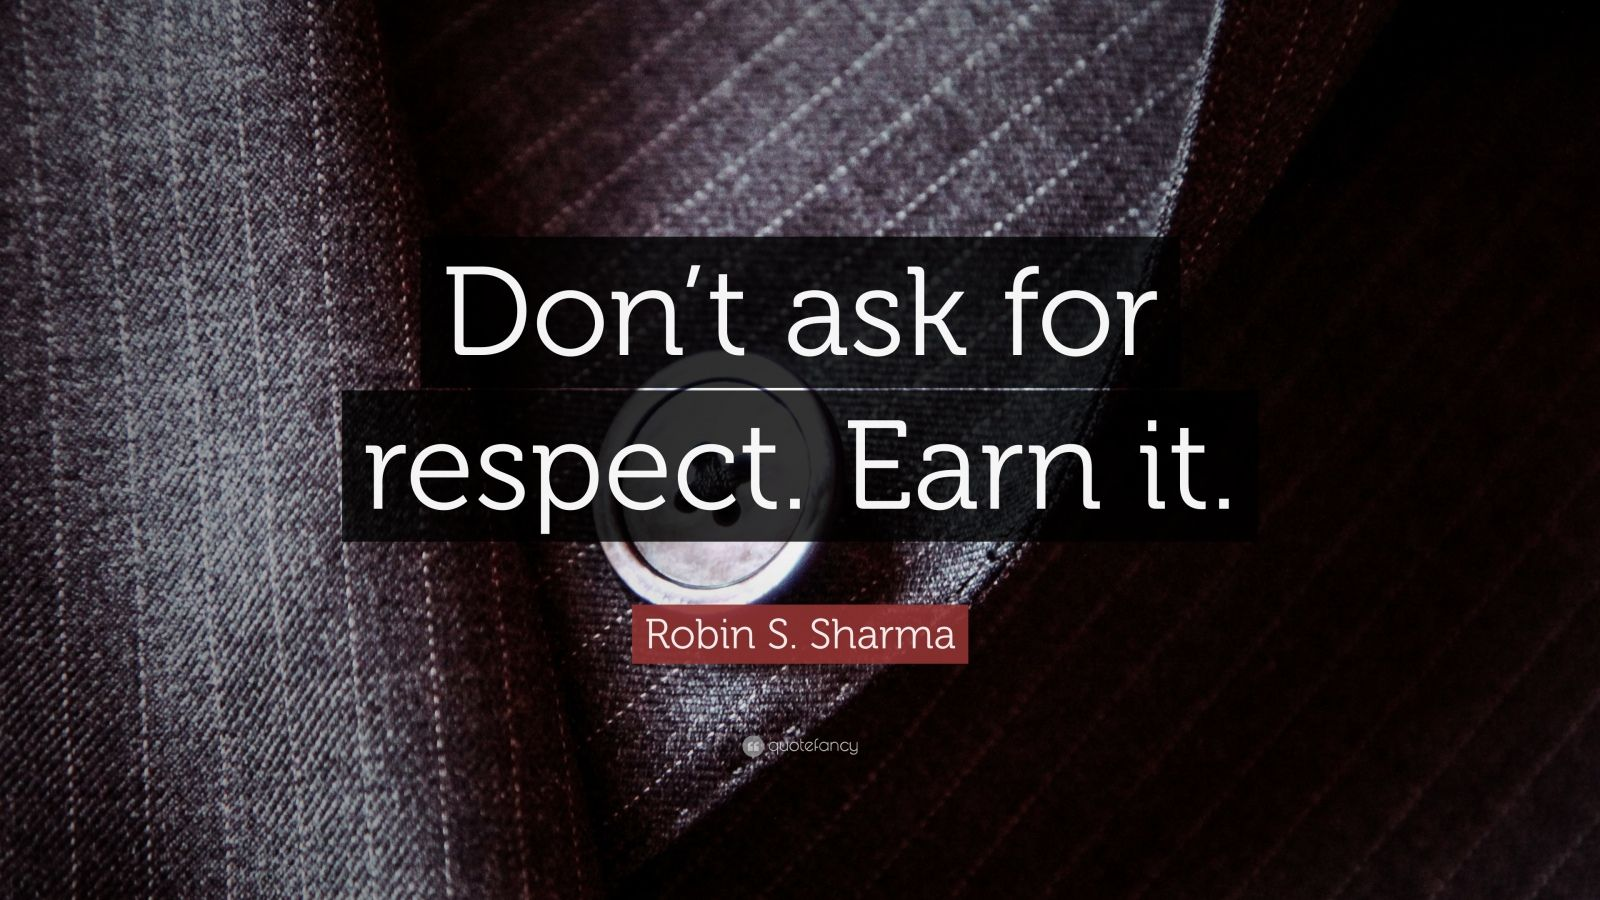 Robin S. Sharma Quote: U201cDonu0027t Ask For Respect. Earn It